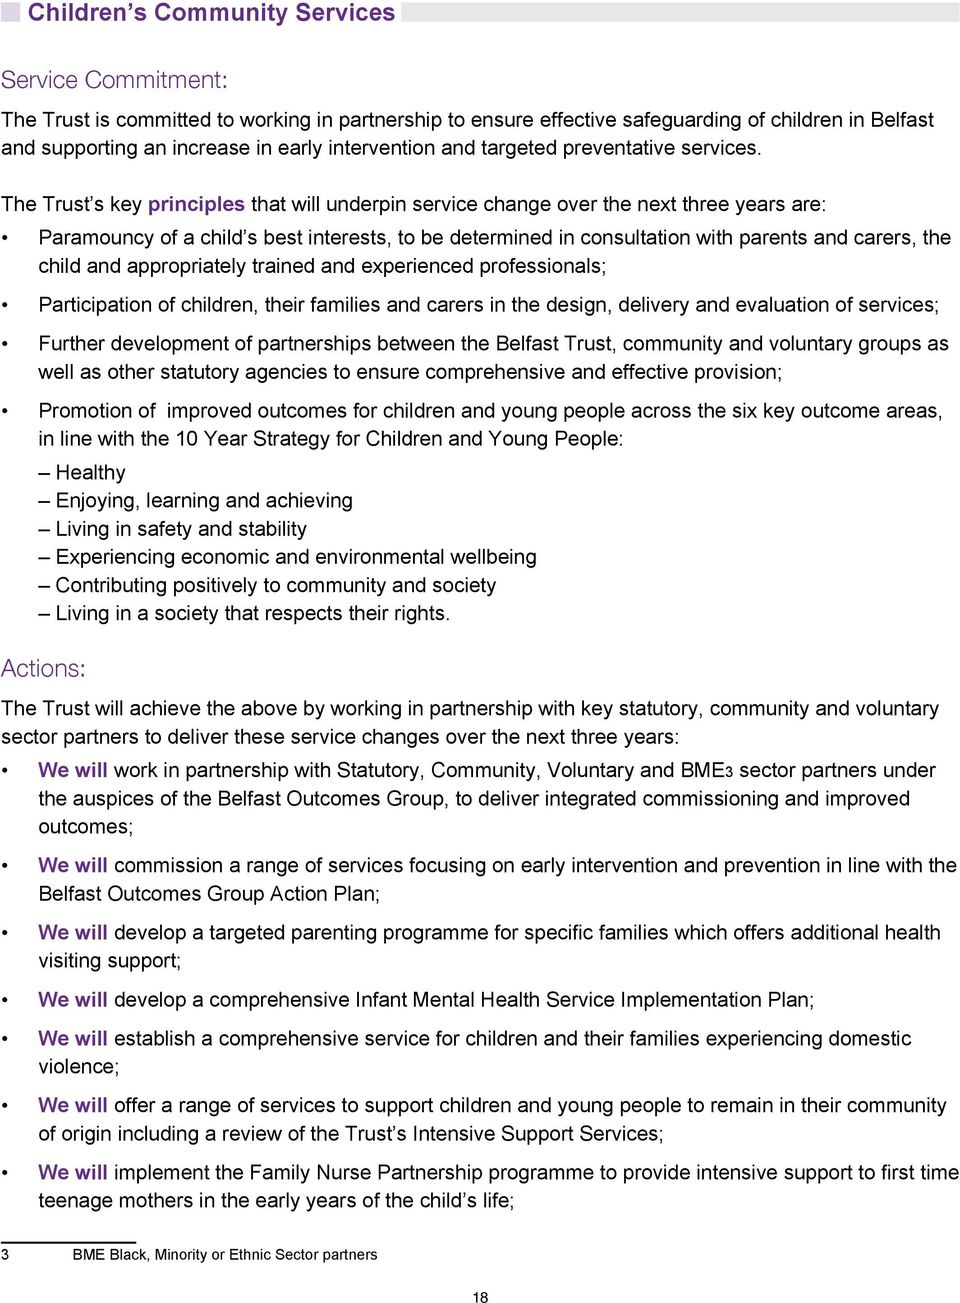 The Trust s key principles that will underpin service change over the next three years are: Paramouncy of a child s best interests, to be determined in consultation with parents and carers, the child